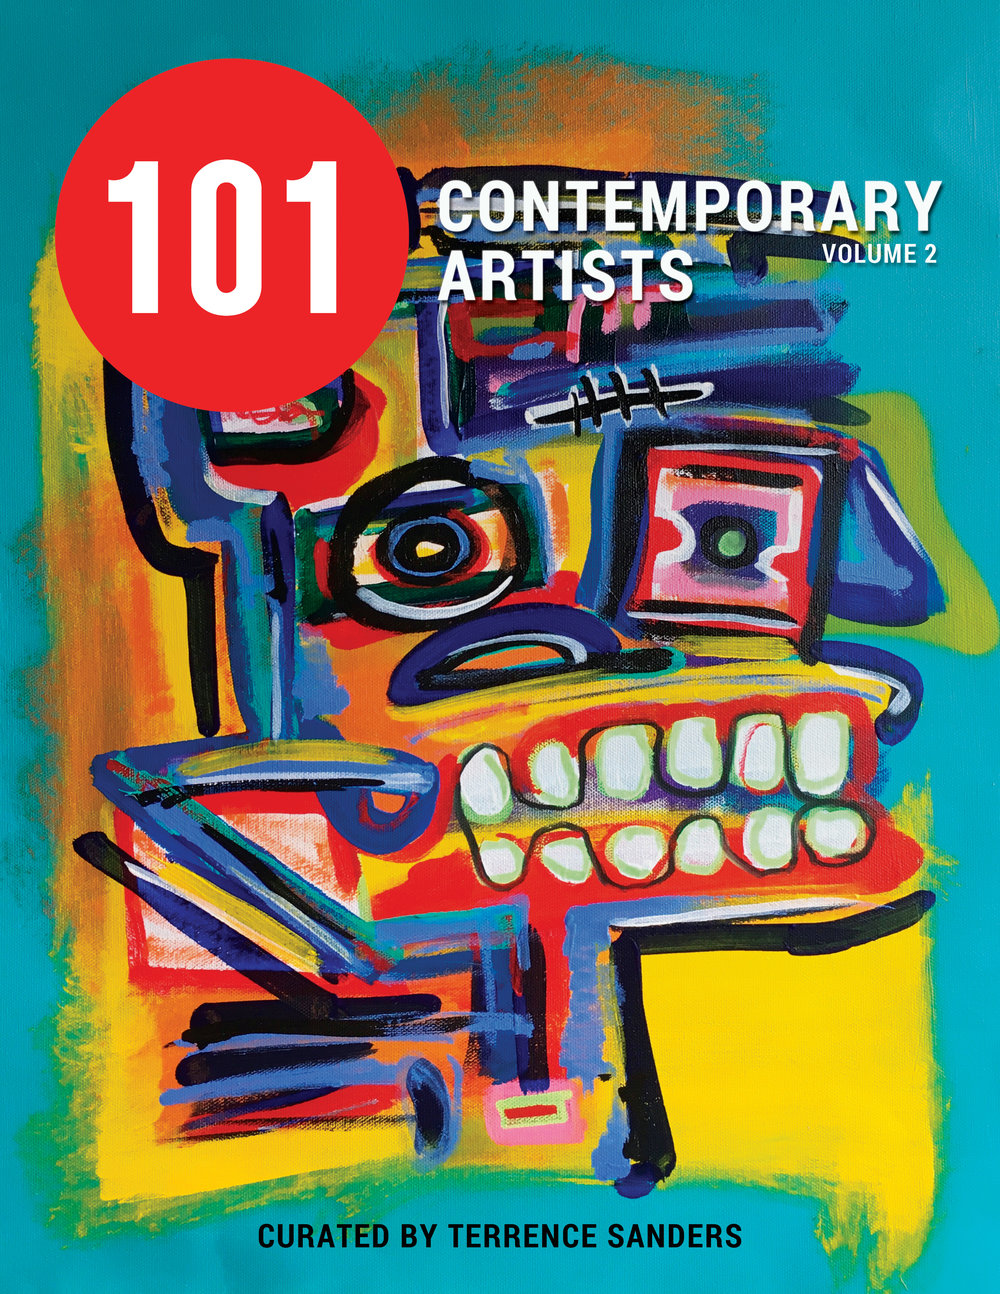 22.101 Contemporary Artists Volume 2.jpg